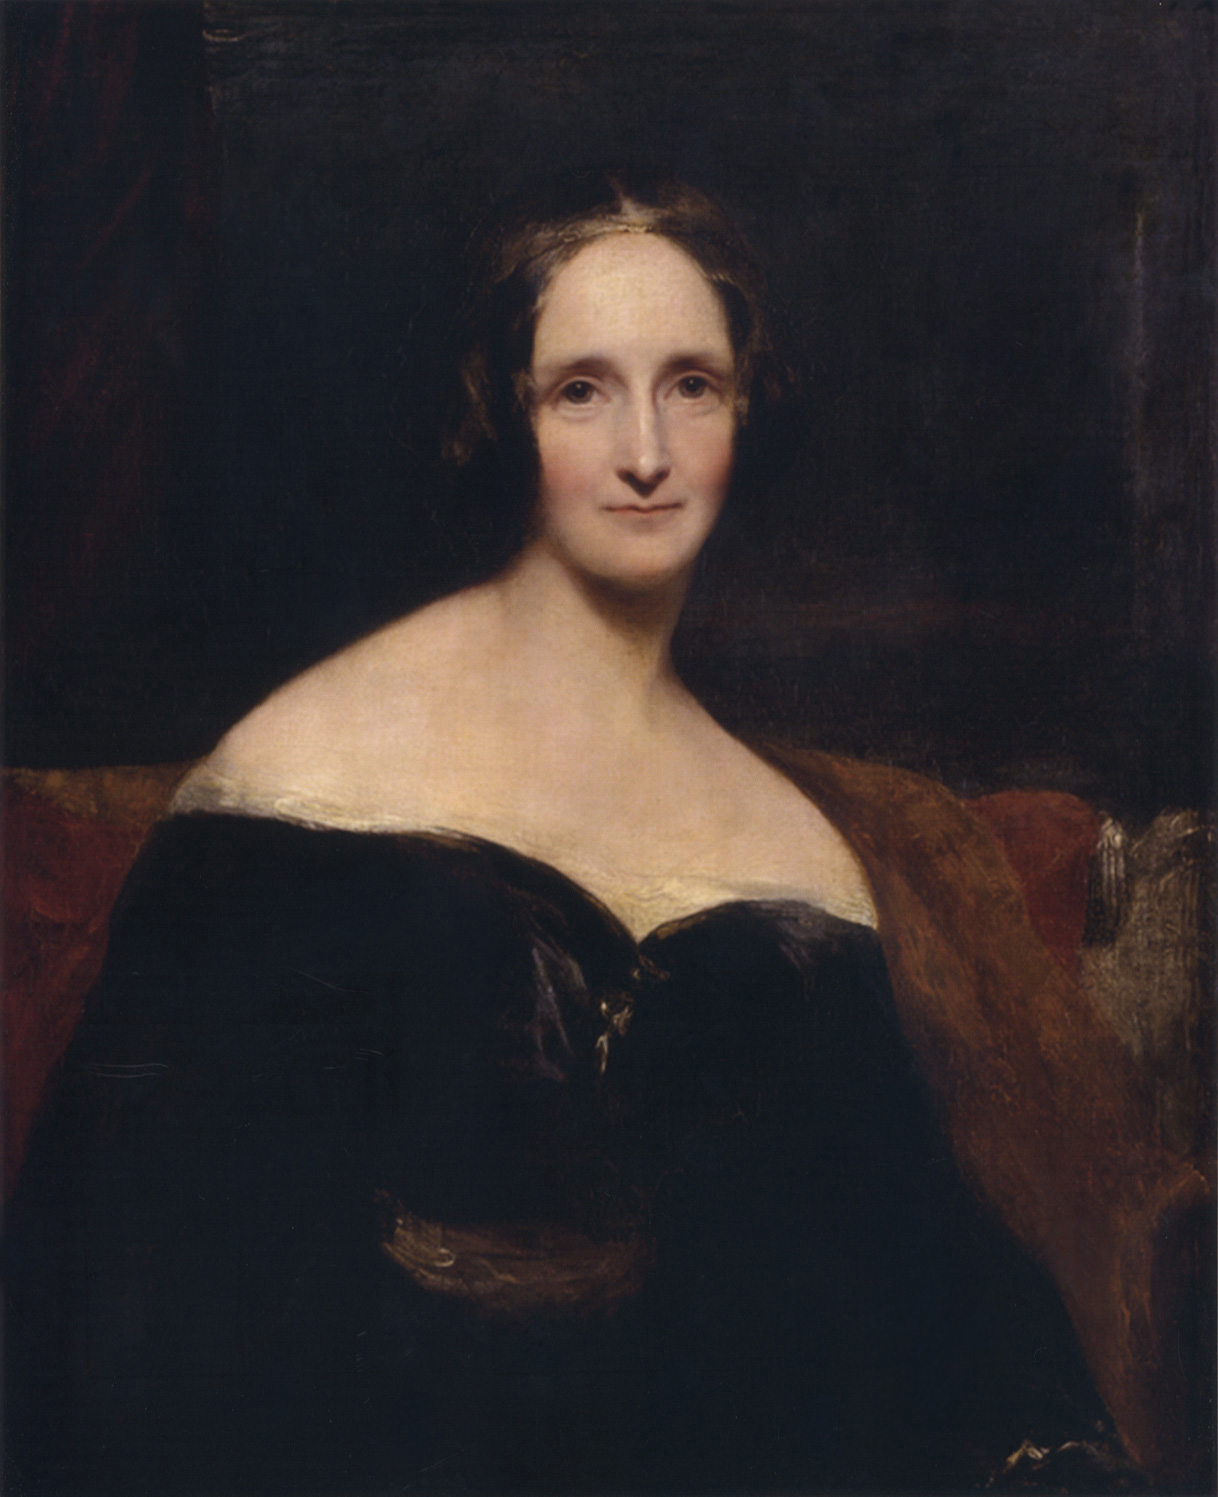 mary shelley s frankenstein the themes of giving birth and english portrait of mary shelley